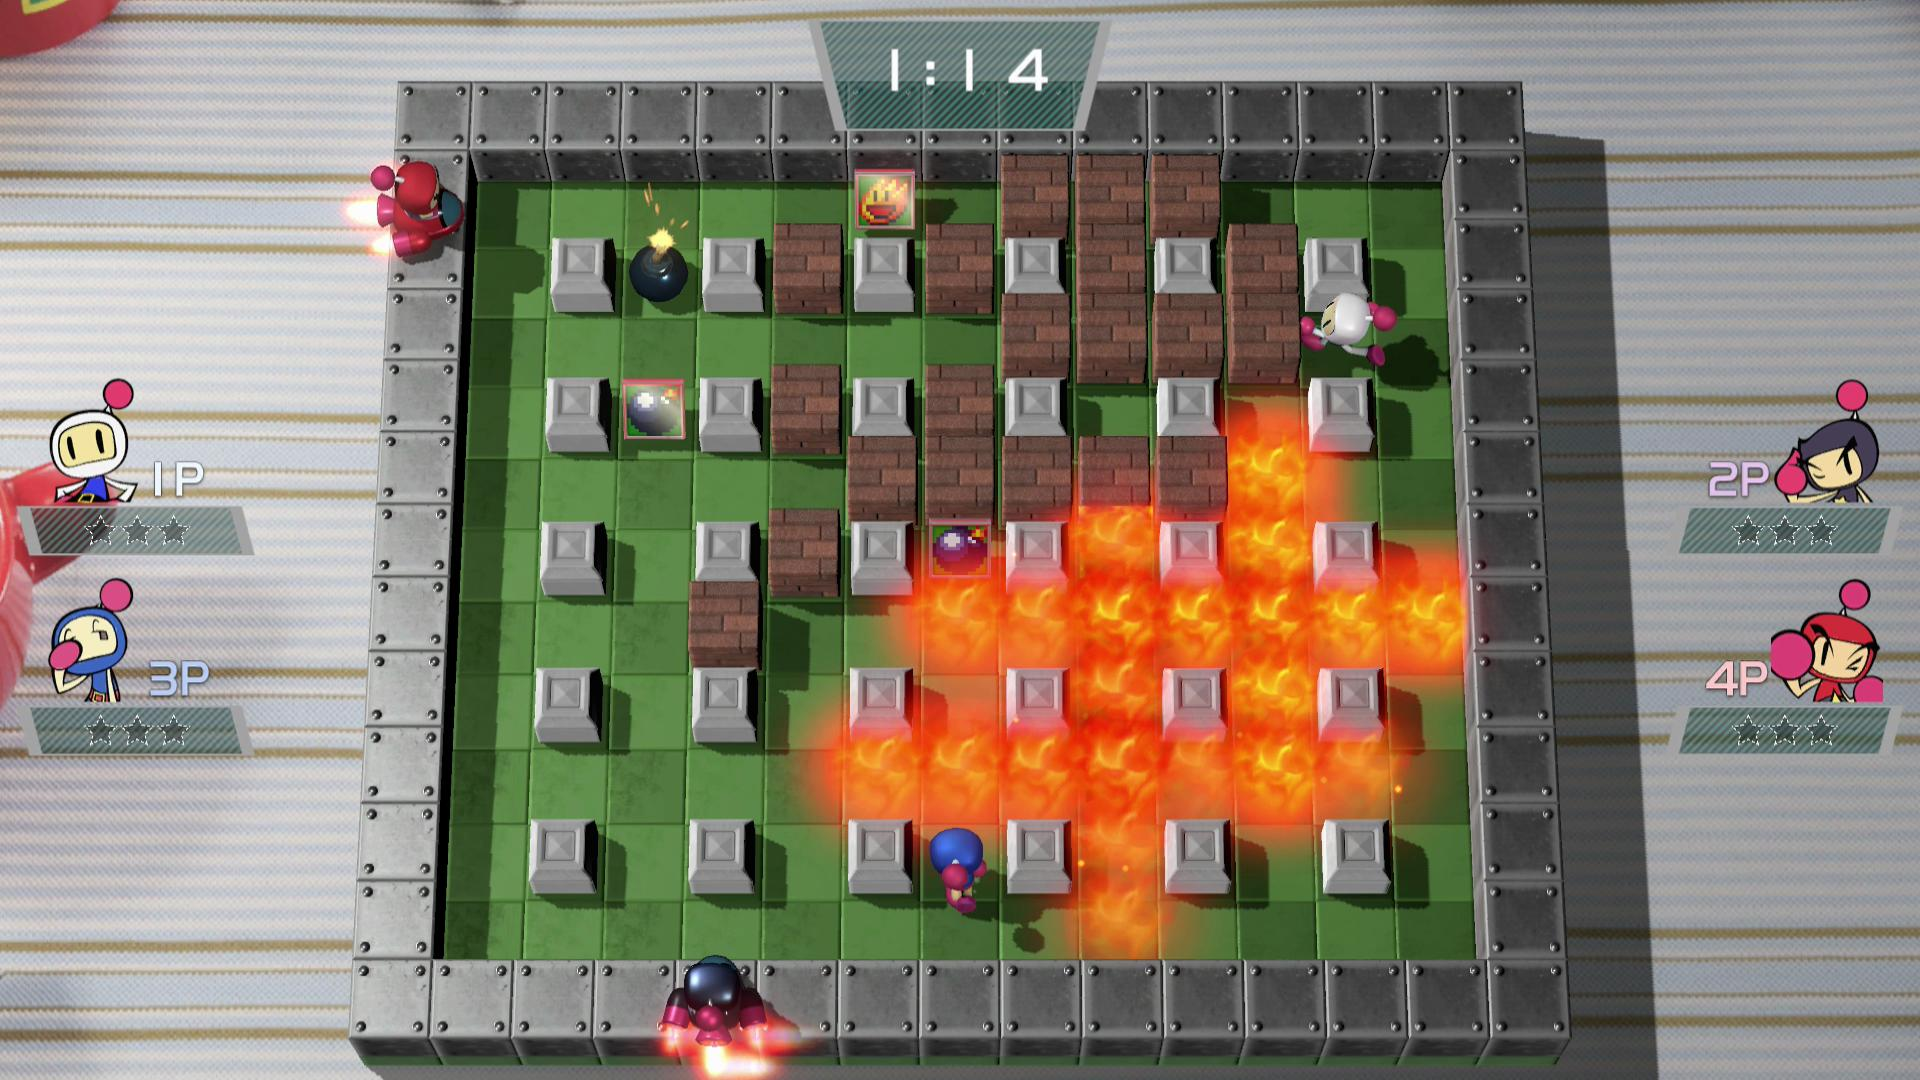 Image result for super bomberman r 1920x1080 screenshots